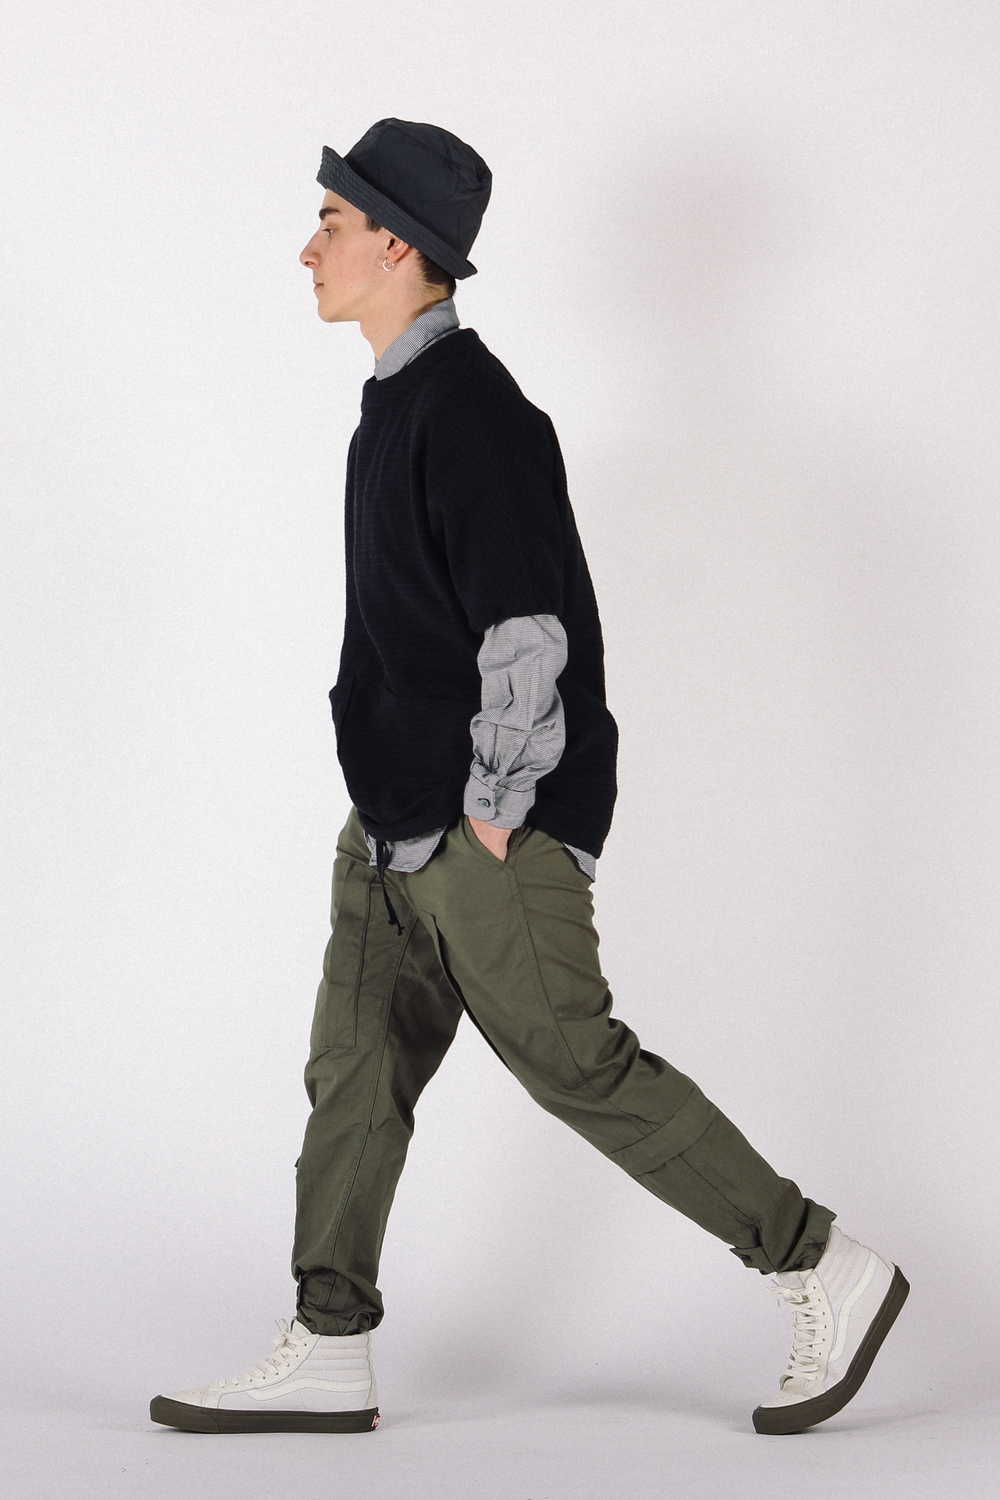 Chapeau: Engineered Garments Bucket Hat Haut: Engineered Garments Chemise à smocks Chemise: Engineered Garments Chemise à col court Pantalon: Engineered Garments Flight Pant Chaussures: Vault par Vans Sk8-Hi LX